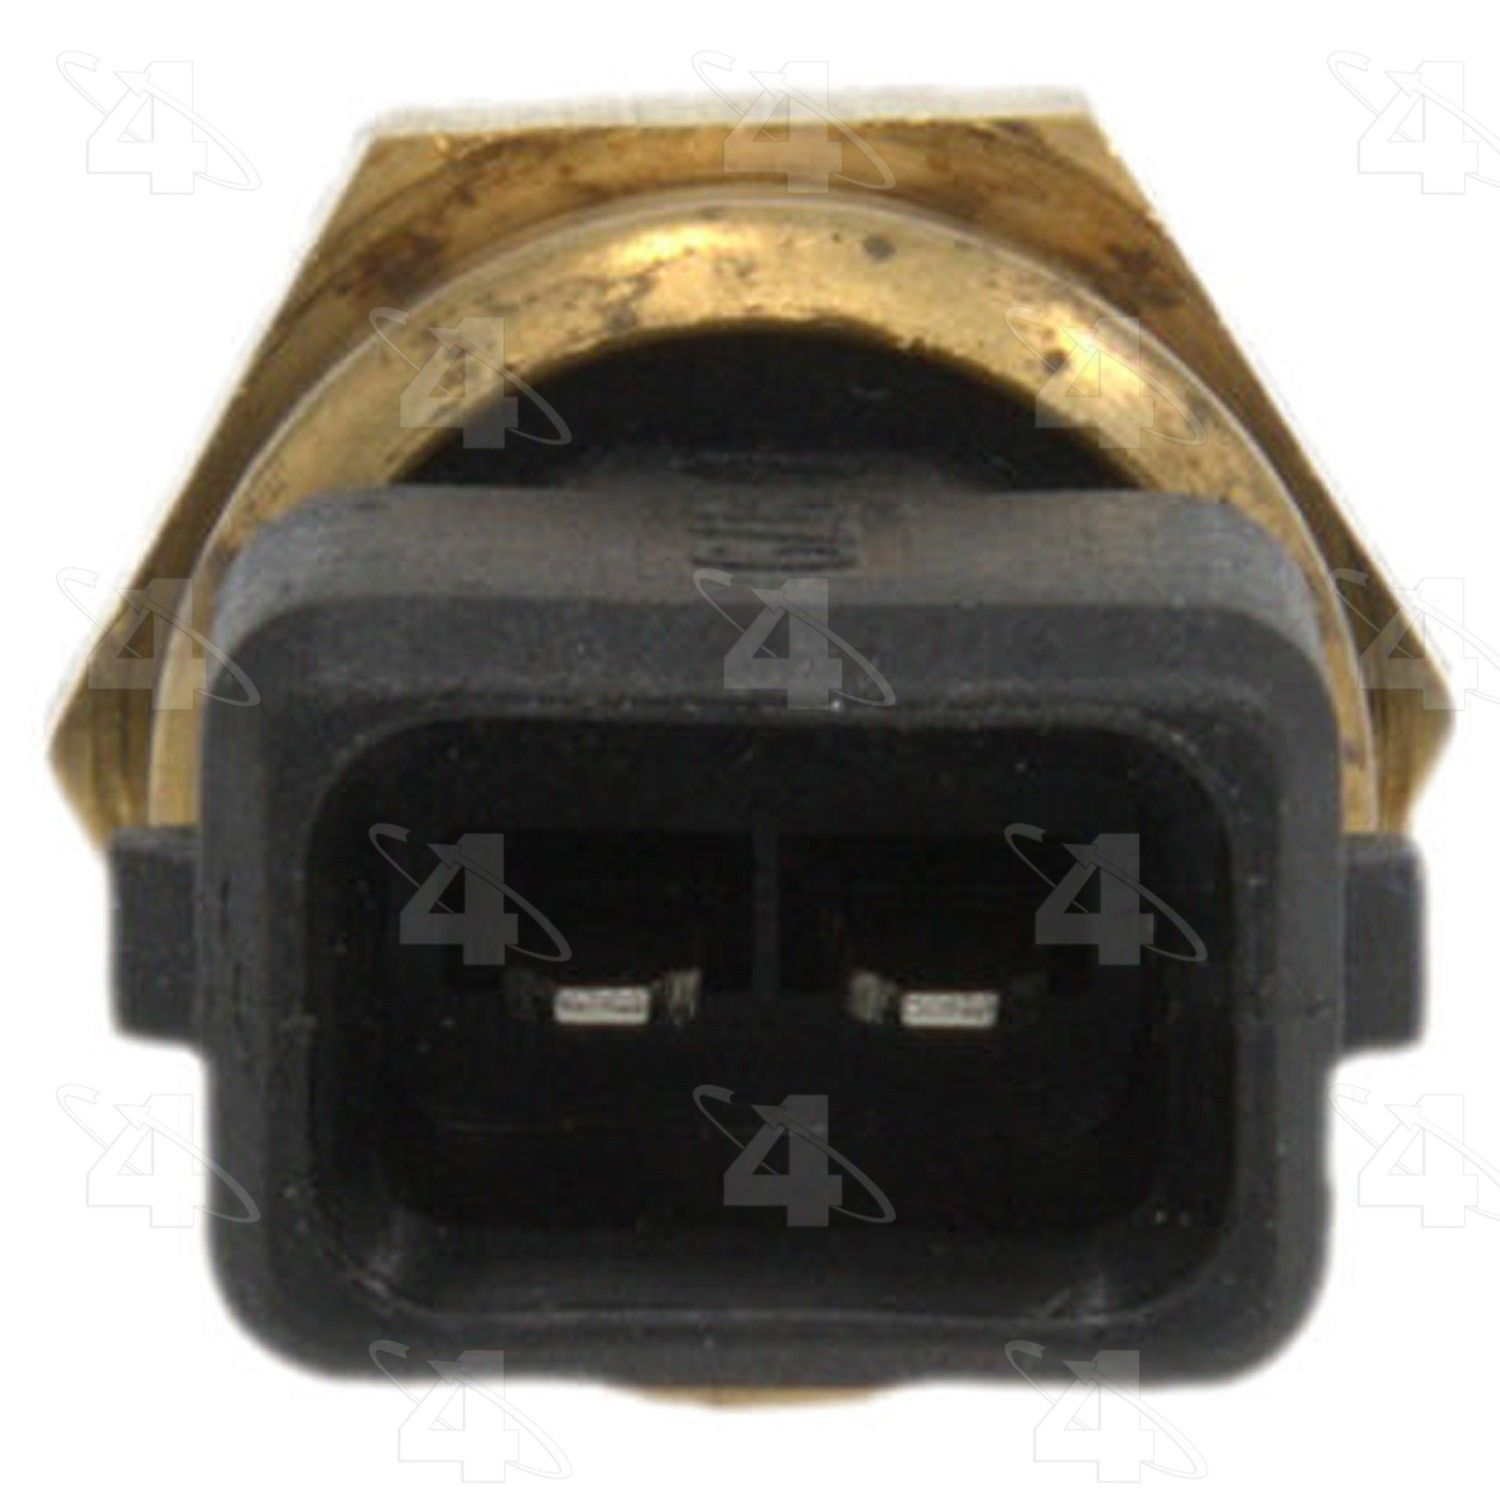 1987 Nissan Pathfinder Engine Coolant Temperature Sensor 6 Cyl 3.0L (Four  Seasons 36420)